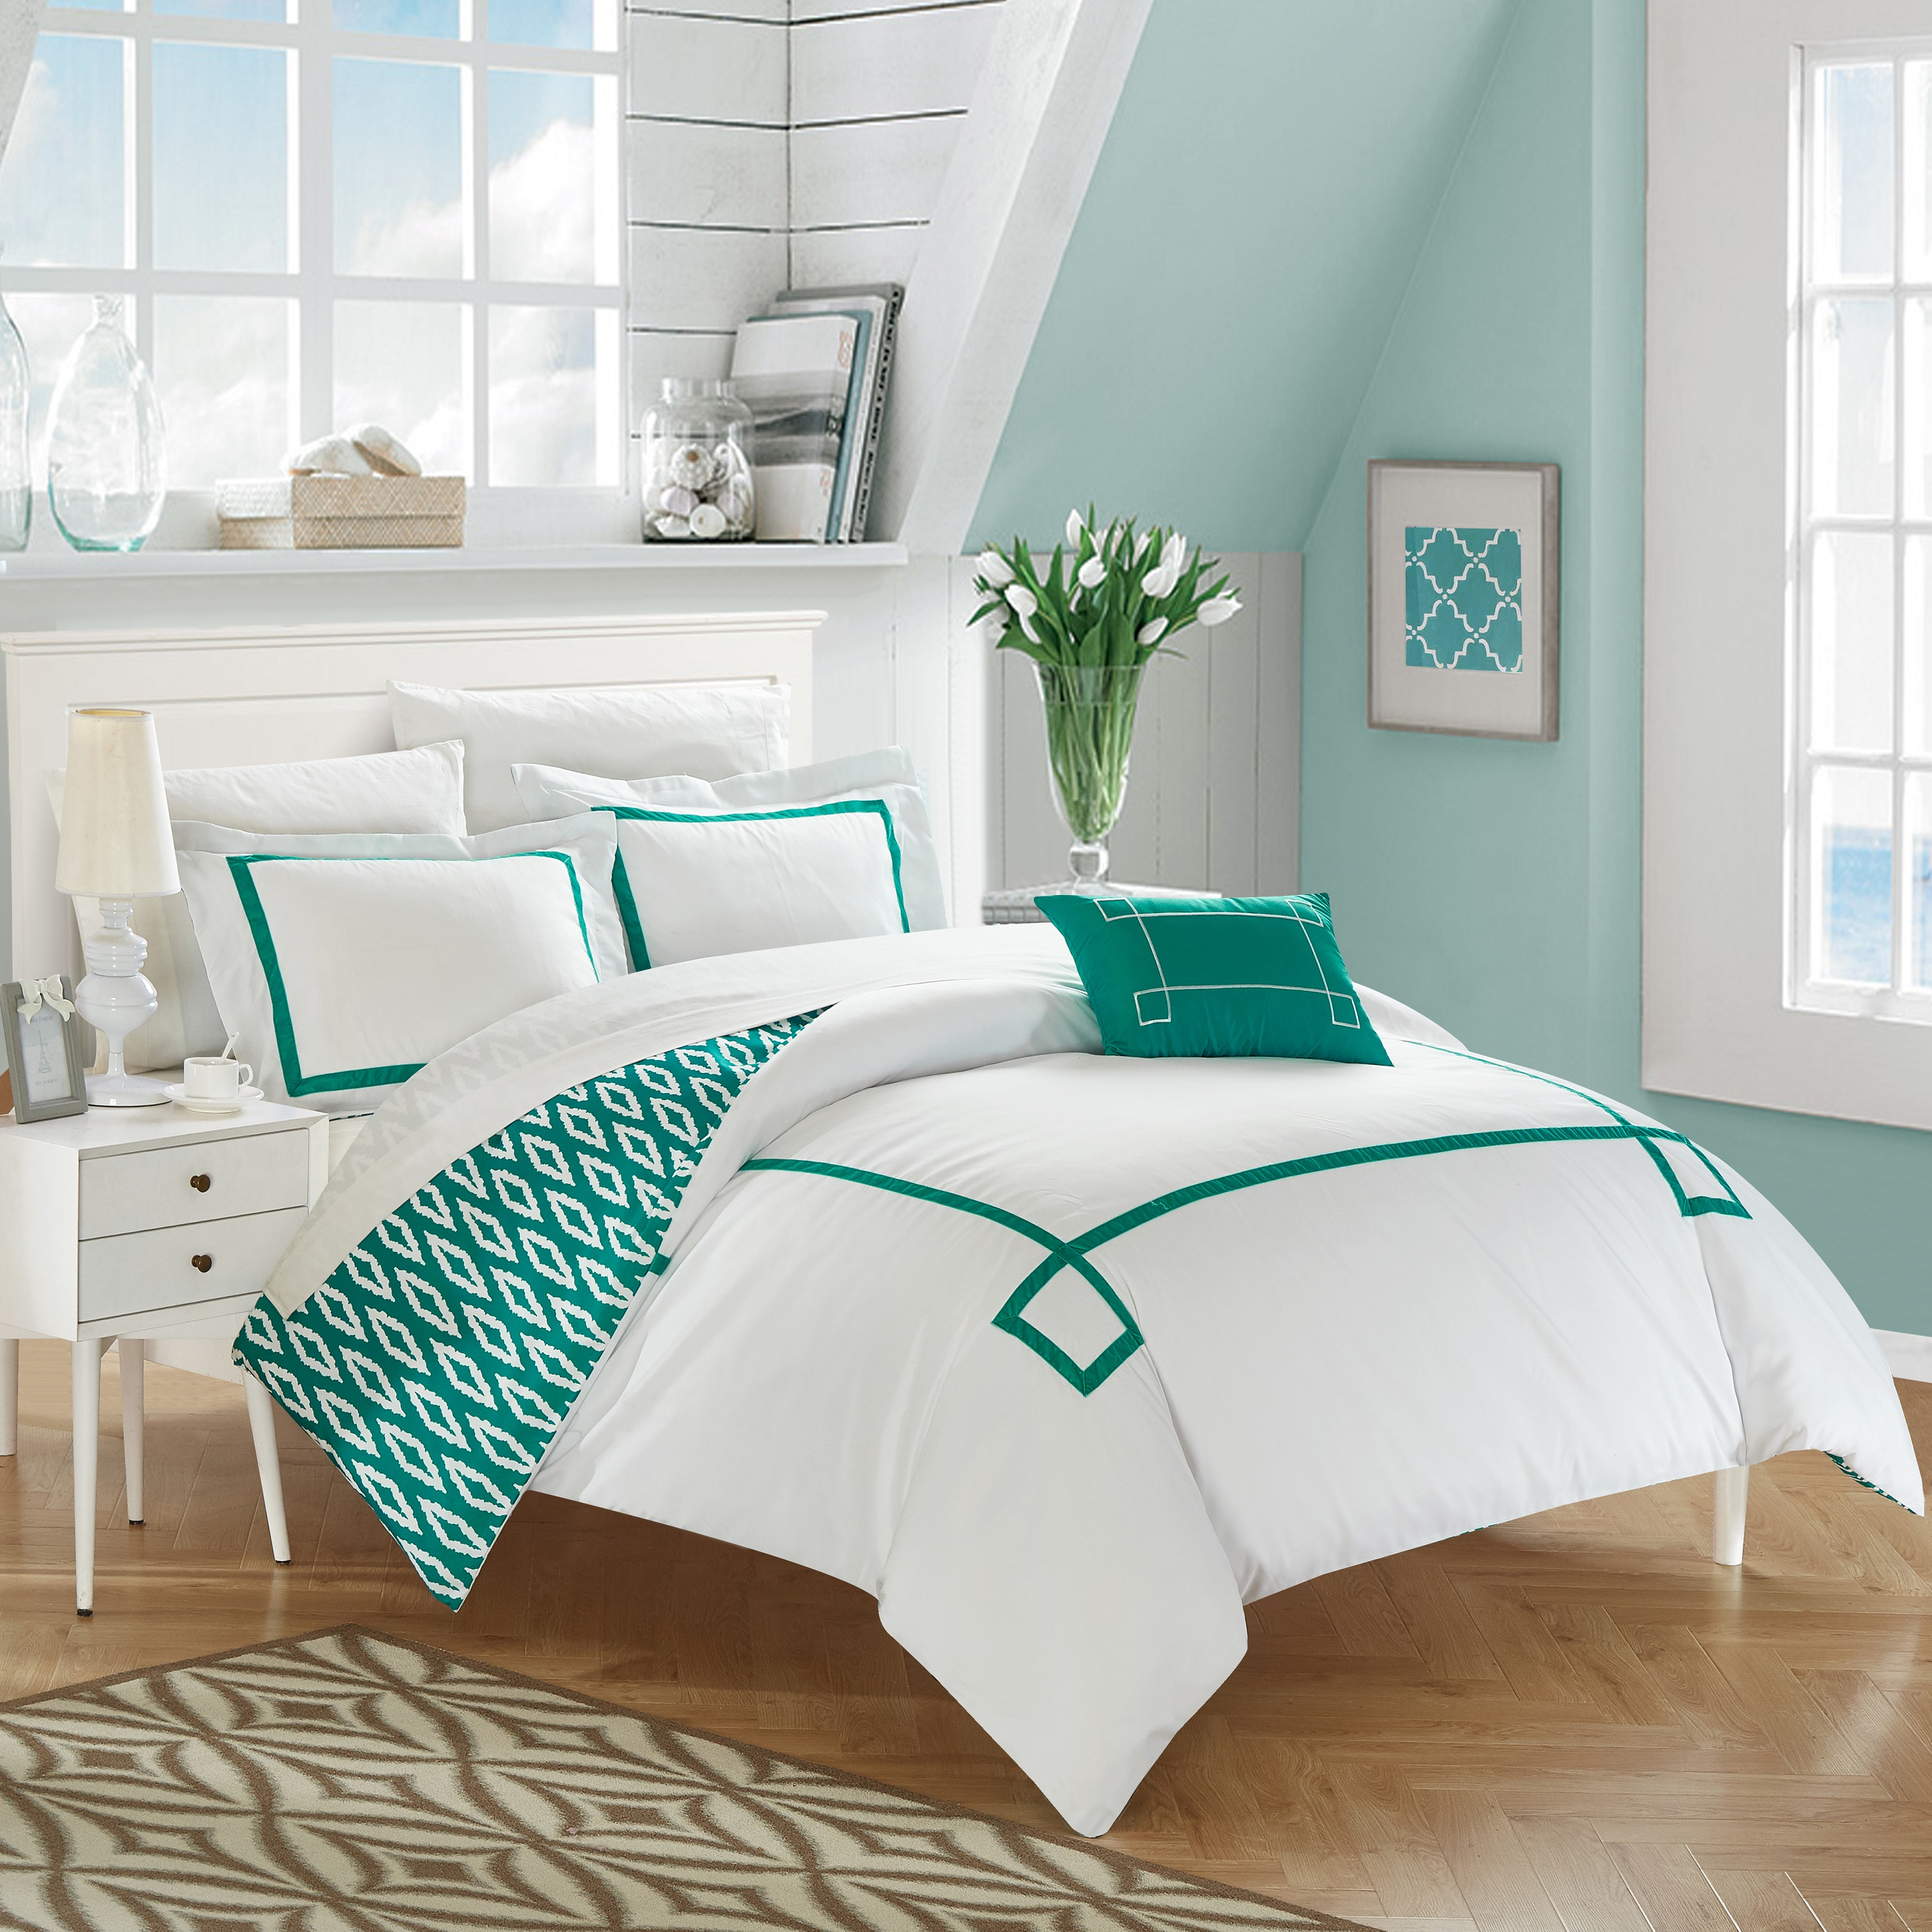 Chic Home 4-Piece Xanti Contemporary Greek Key Embroidered REVERSIBLE Duvet Cover Set, Shams and Decorative Pillows included